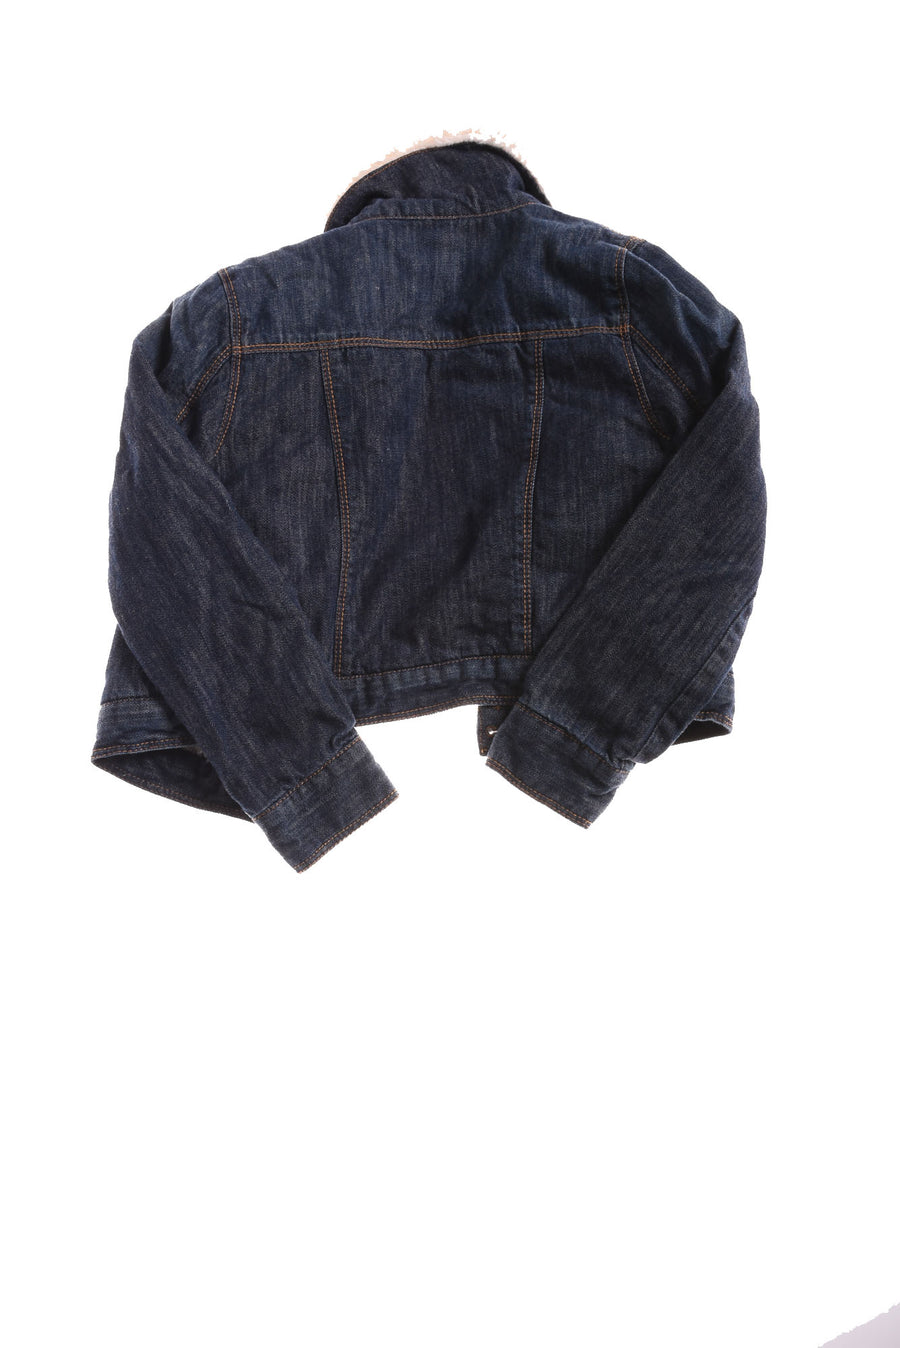 Girl's Jean Jacket By Gap Kids